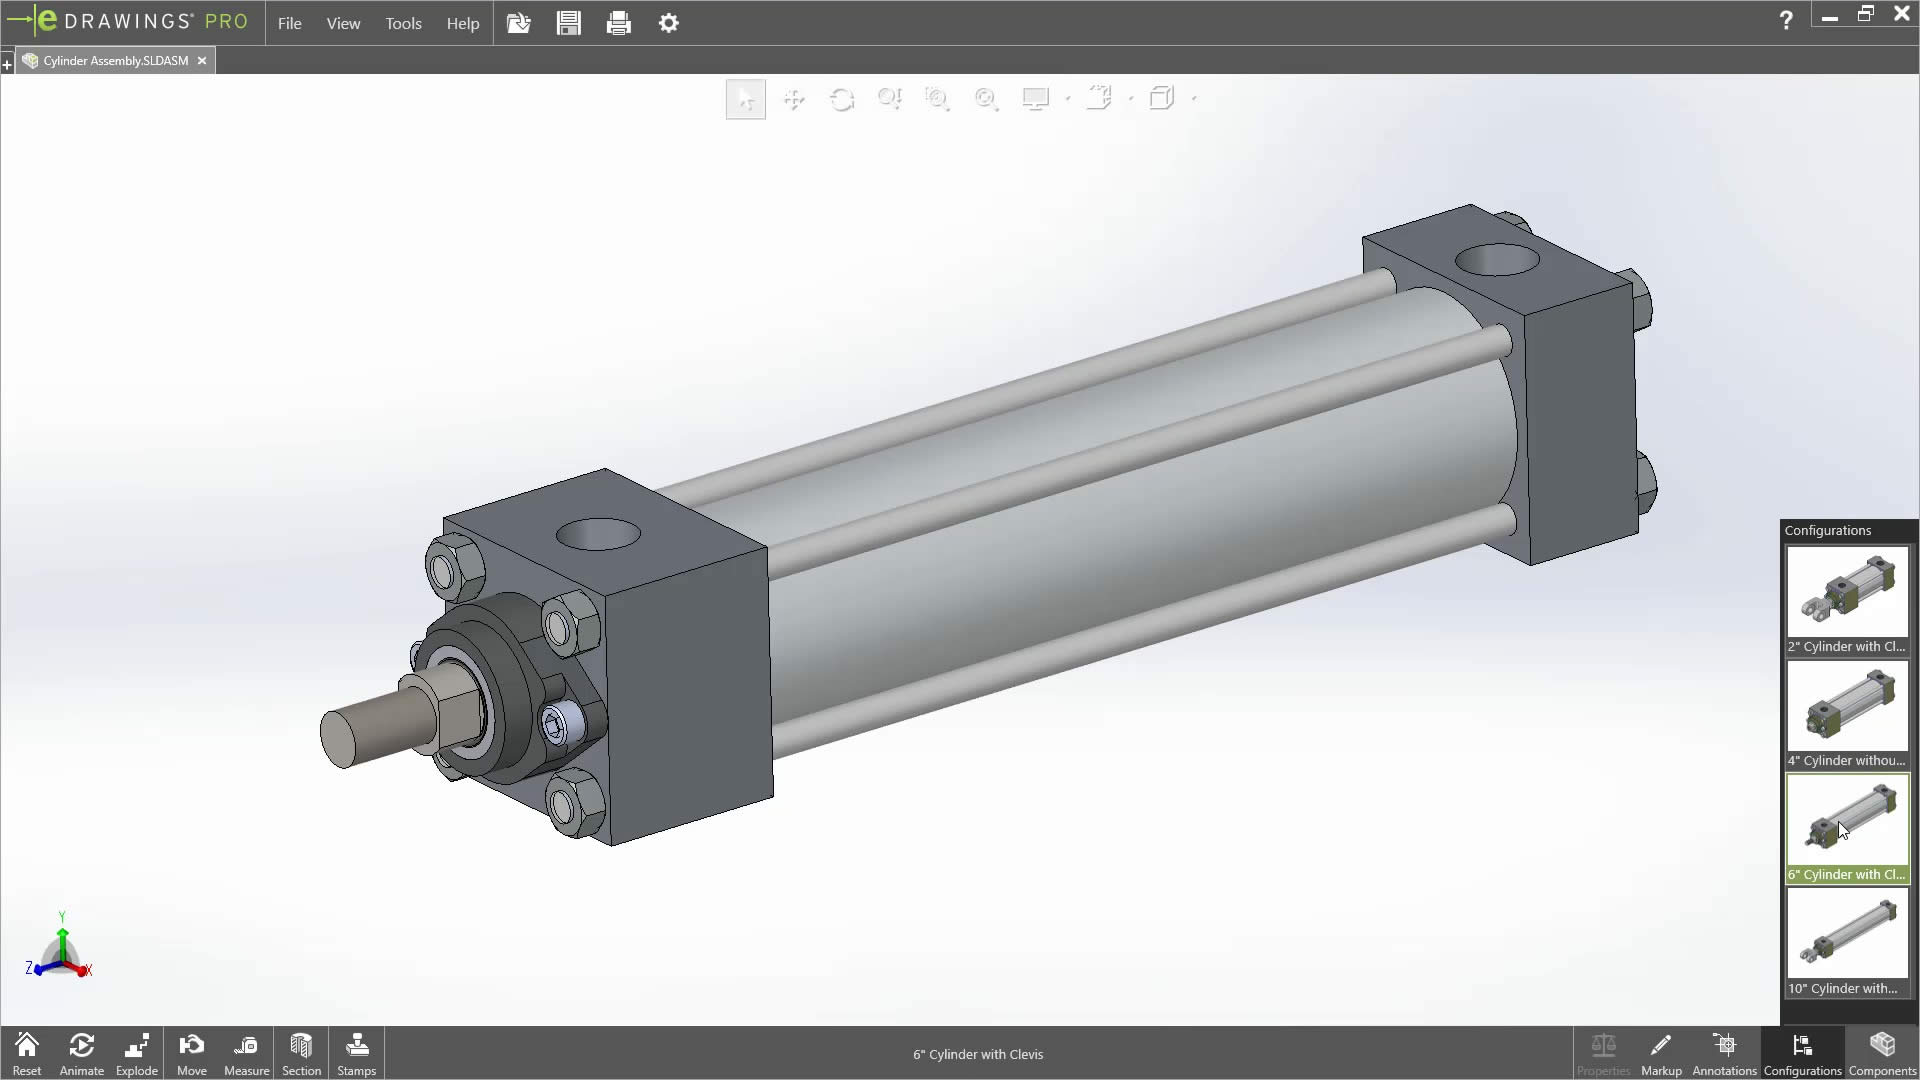 Accelerate Product Development with eDrawings 2019